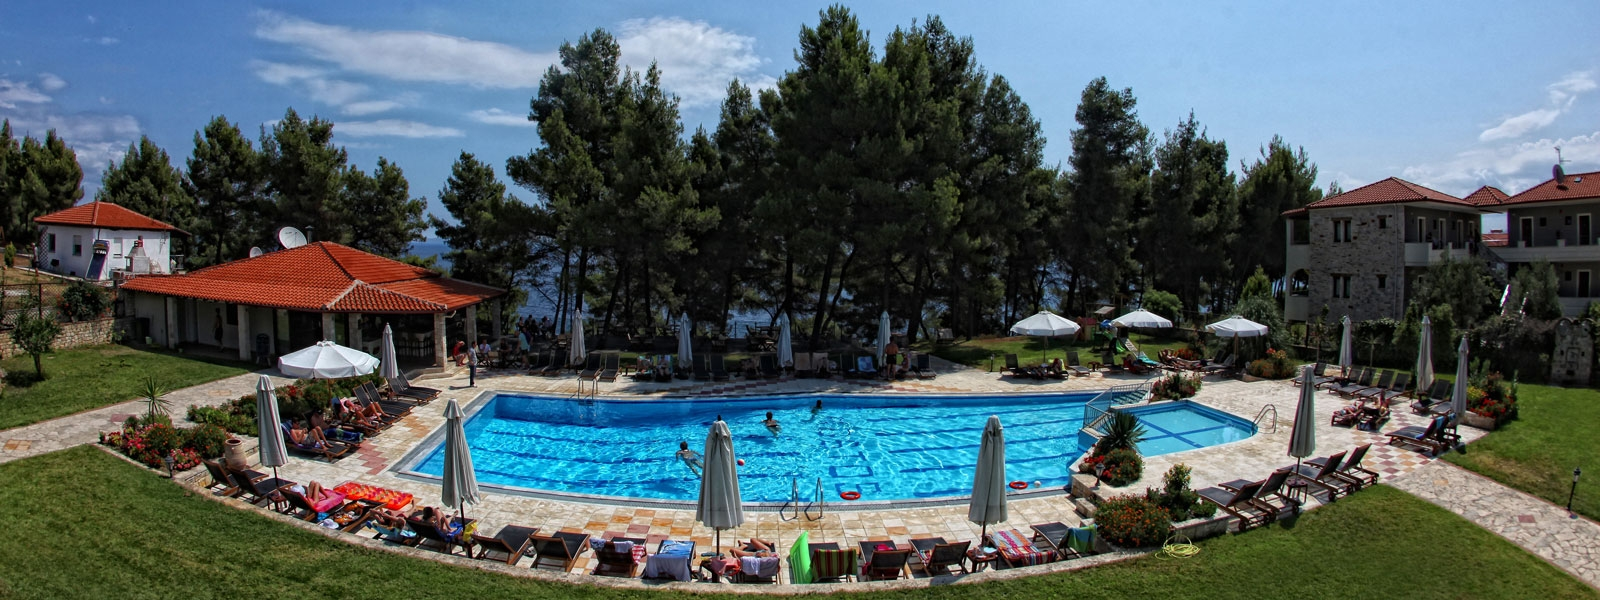 Nostos Hotel, Afitos, restaurants, bars, night life, pool, cafes, Chalkidiki